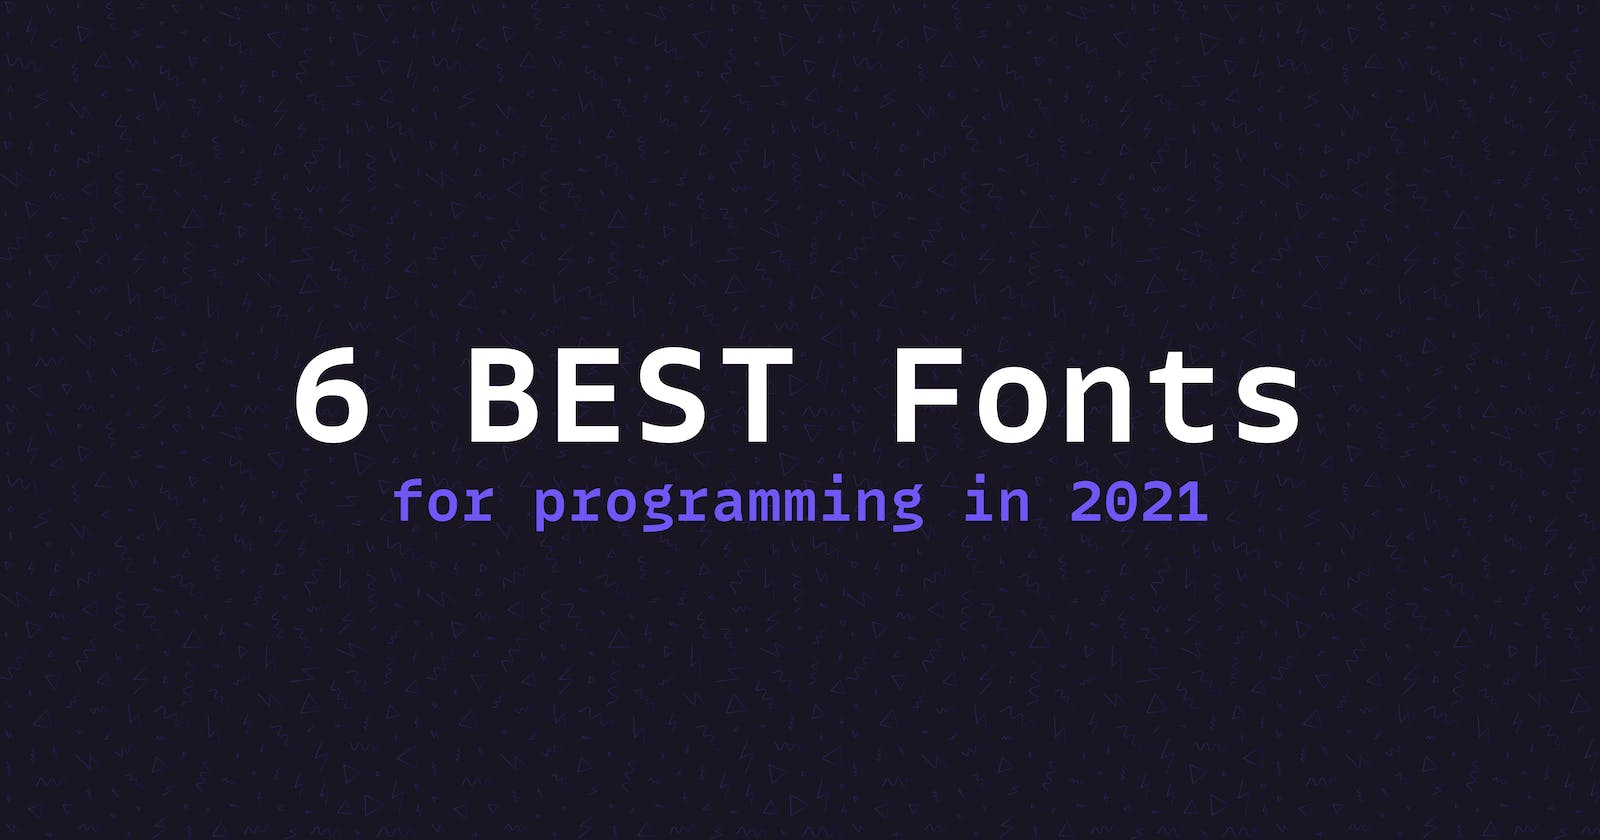 6 BEST Fonts for Programming in 2021